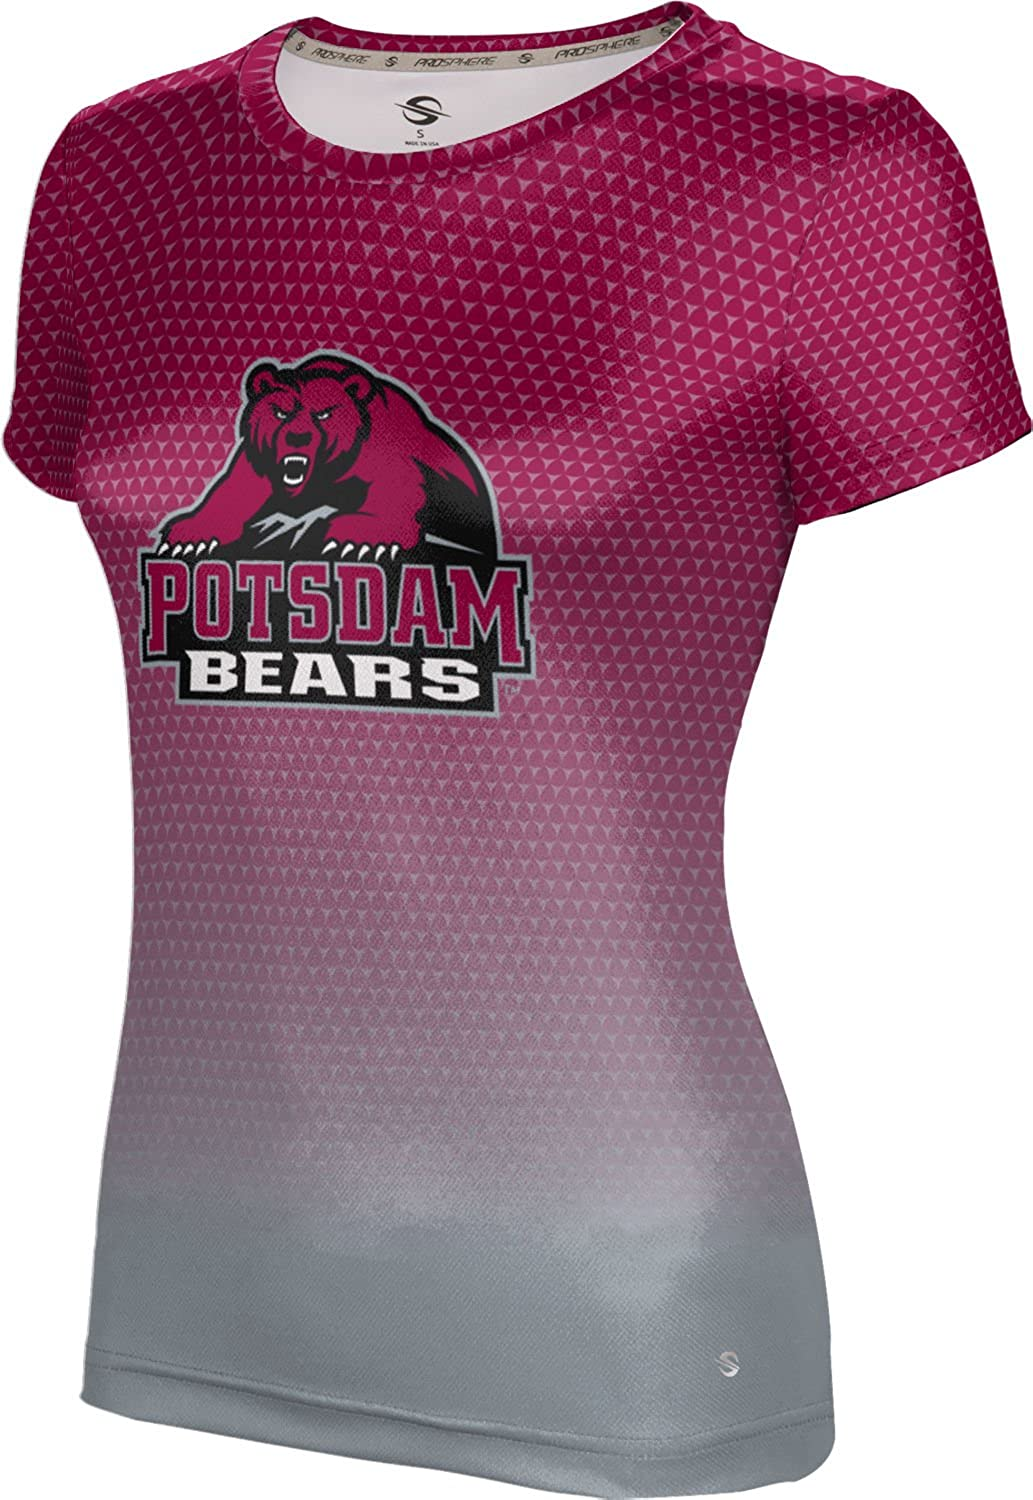 State University of New York at Potsdam Girls' Performance T-Shirt (Zoom) F9AC5 Red and Gray